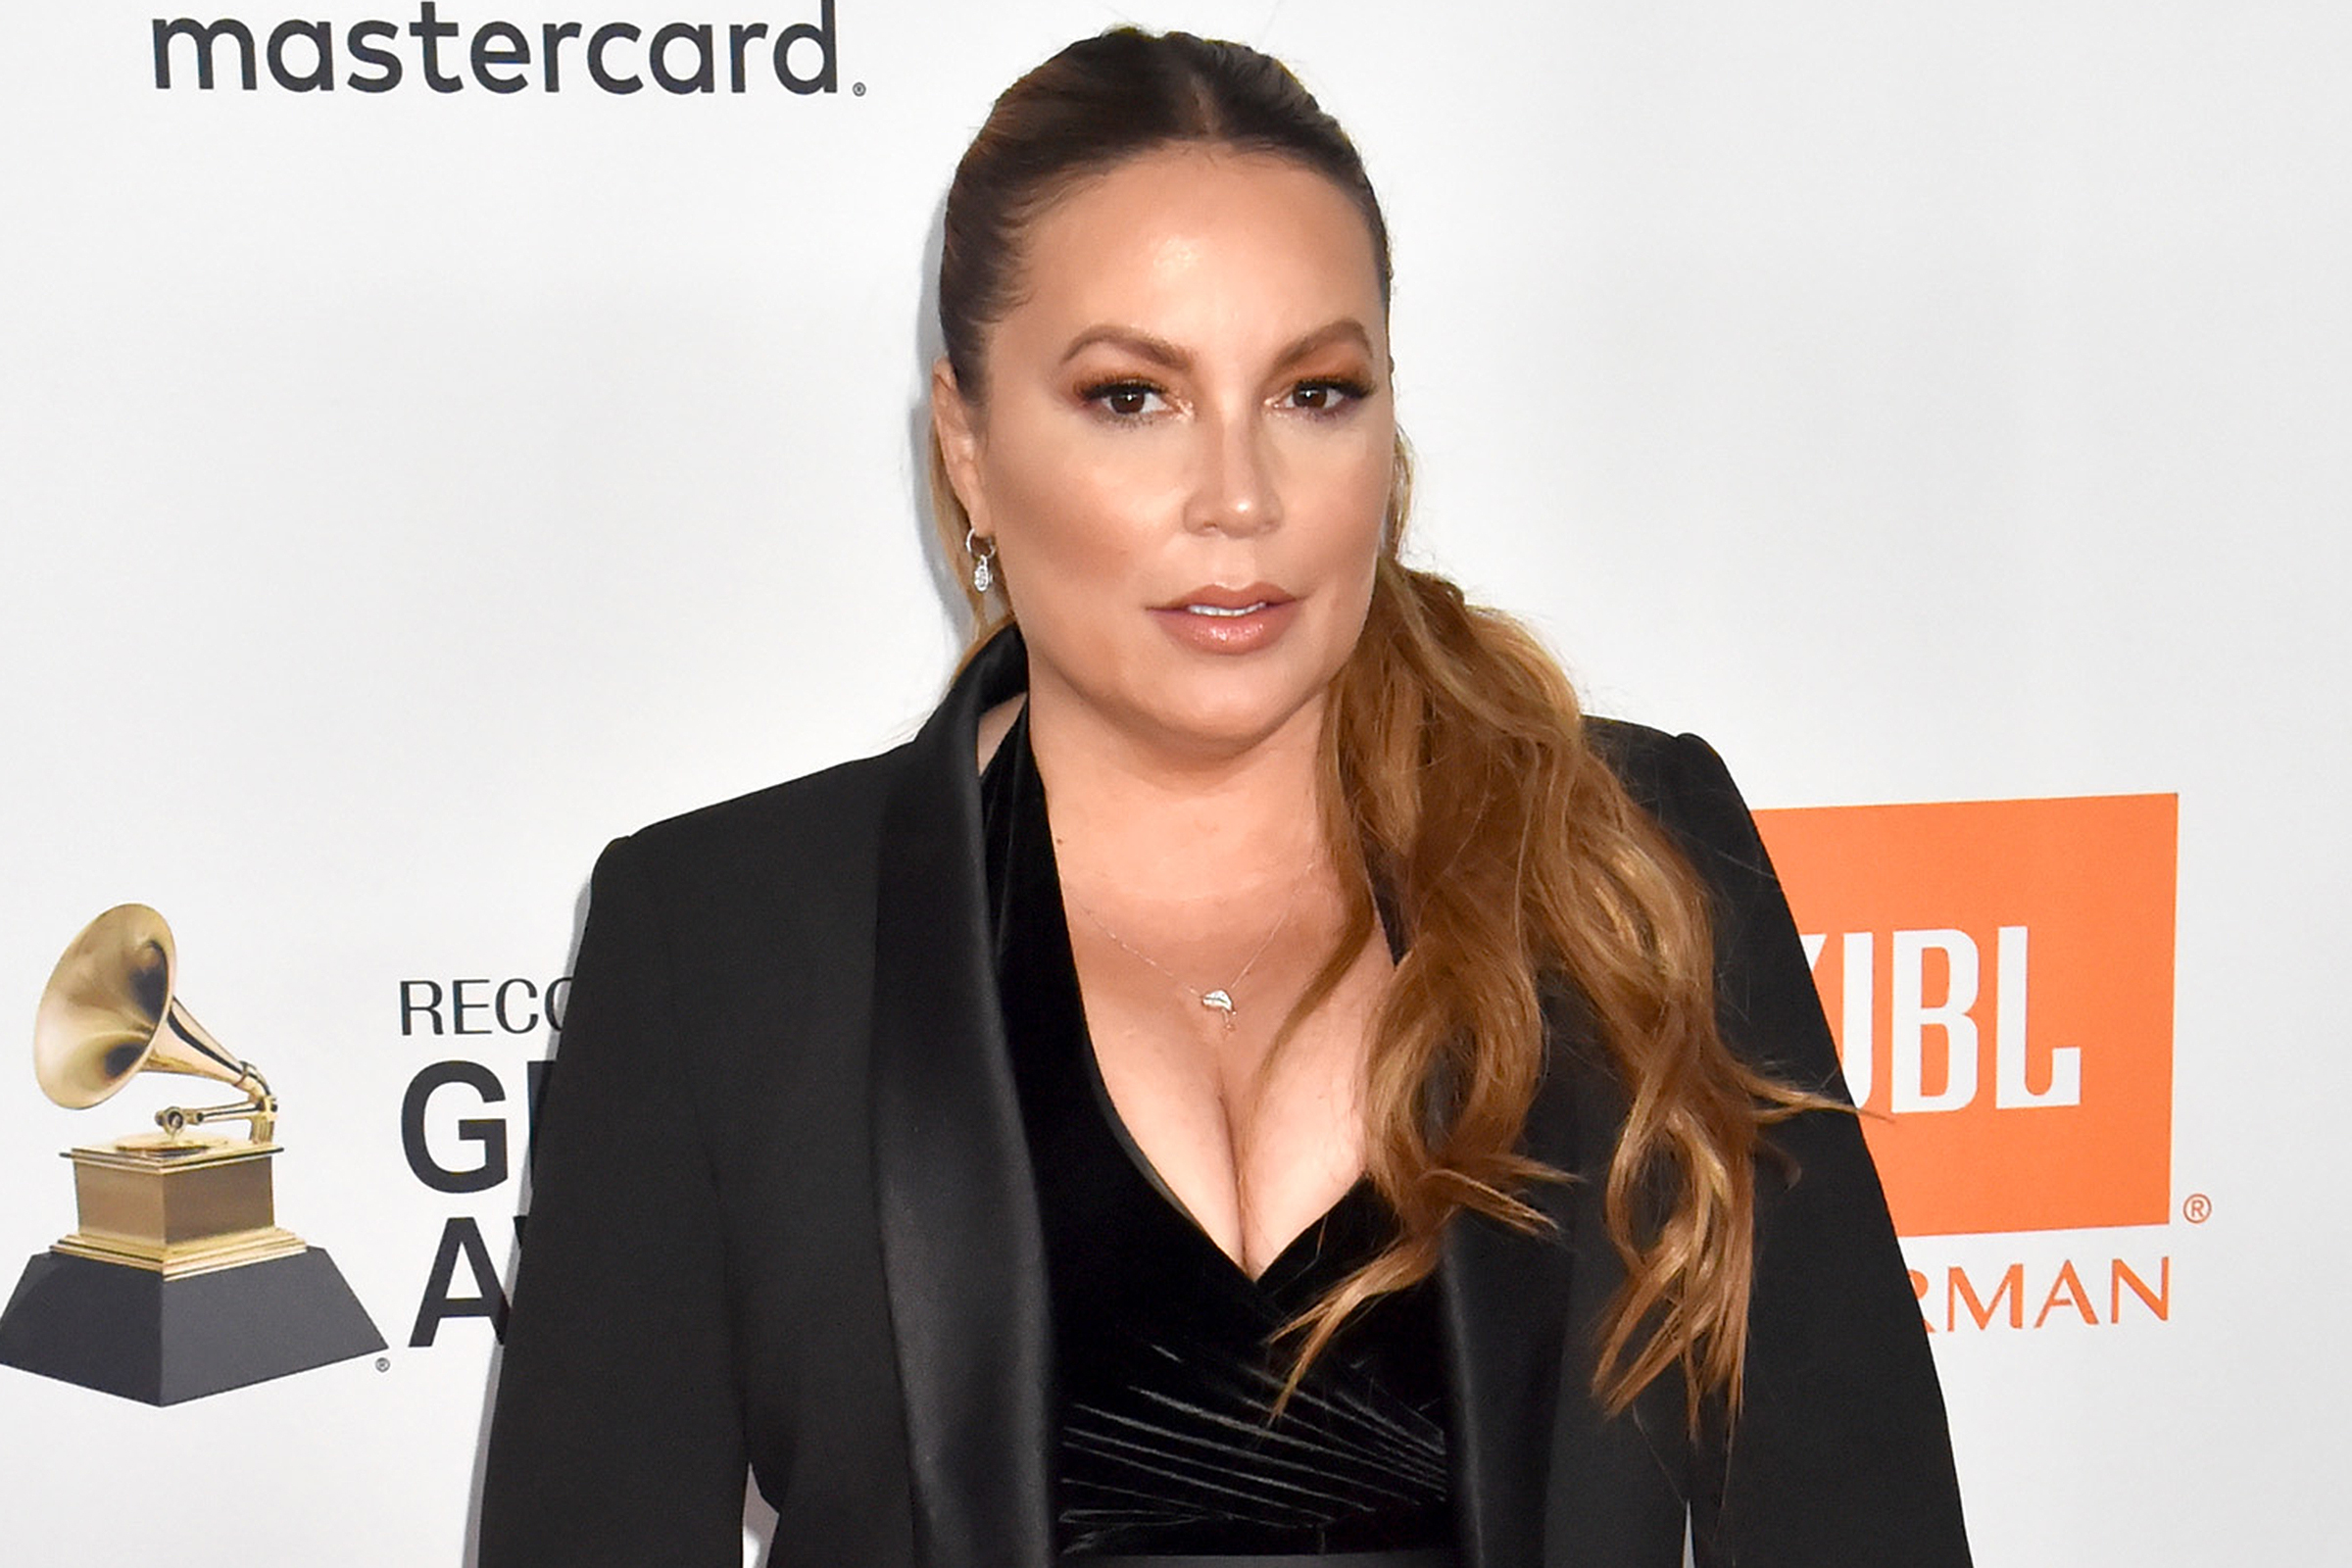 The 49-year old daughter of father (?) and mother(?) Angie Martinez in 2020 photo. Angie Martinez earned a  million dollar salary - leaving the net worth at  million in 2020